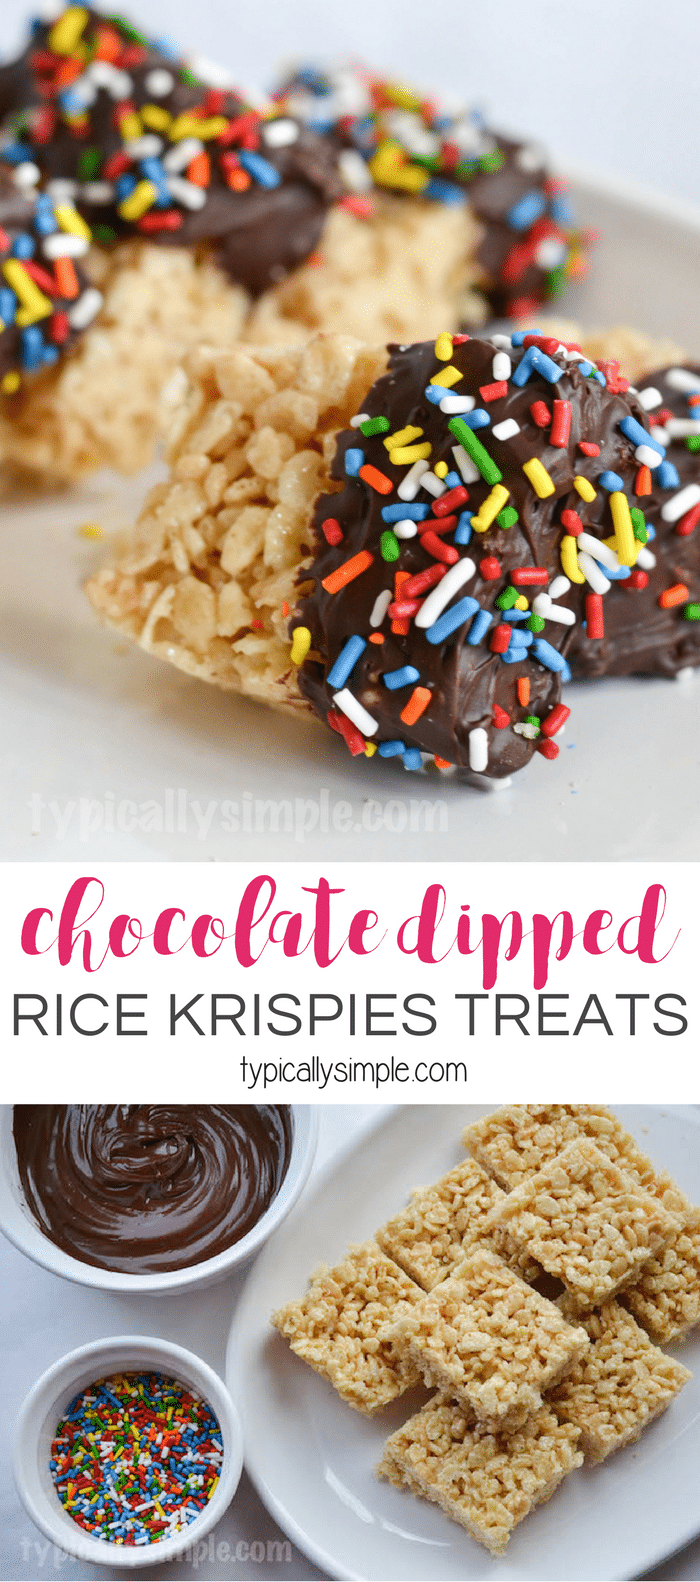 Dipping Rice Krispies treats into melted chocolate is a fun twist on a classic childhood treat we all know so well. A simple recipe to make with the kids!